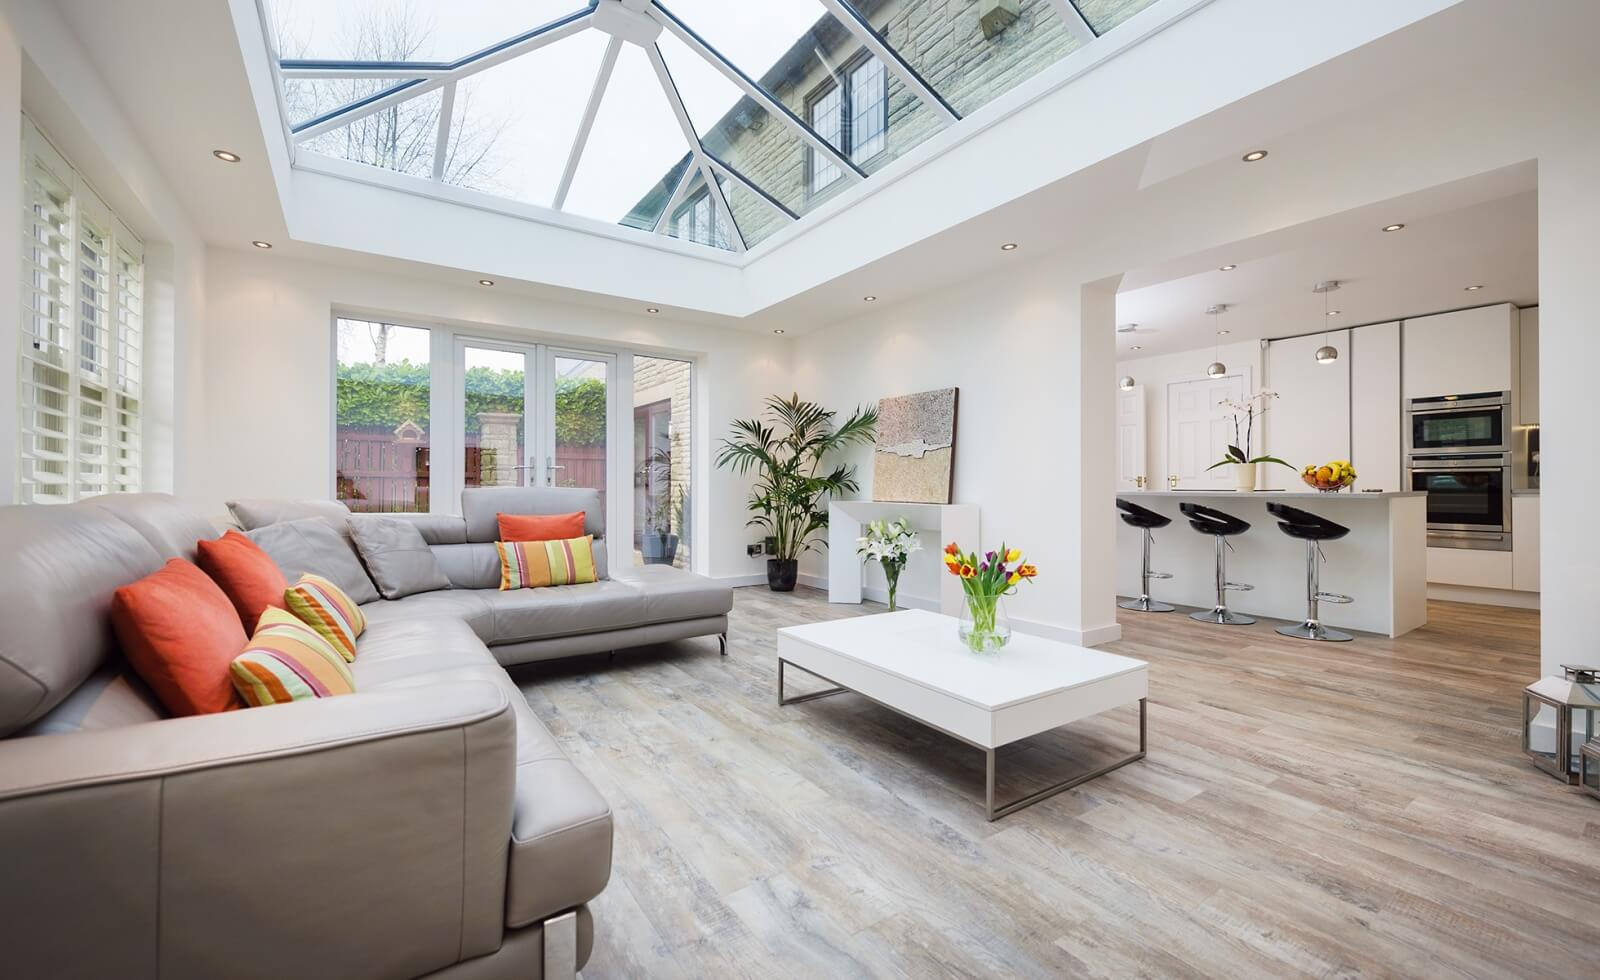 Get An Extension To Your Home - Your Local Builder of Lofts & Homes